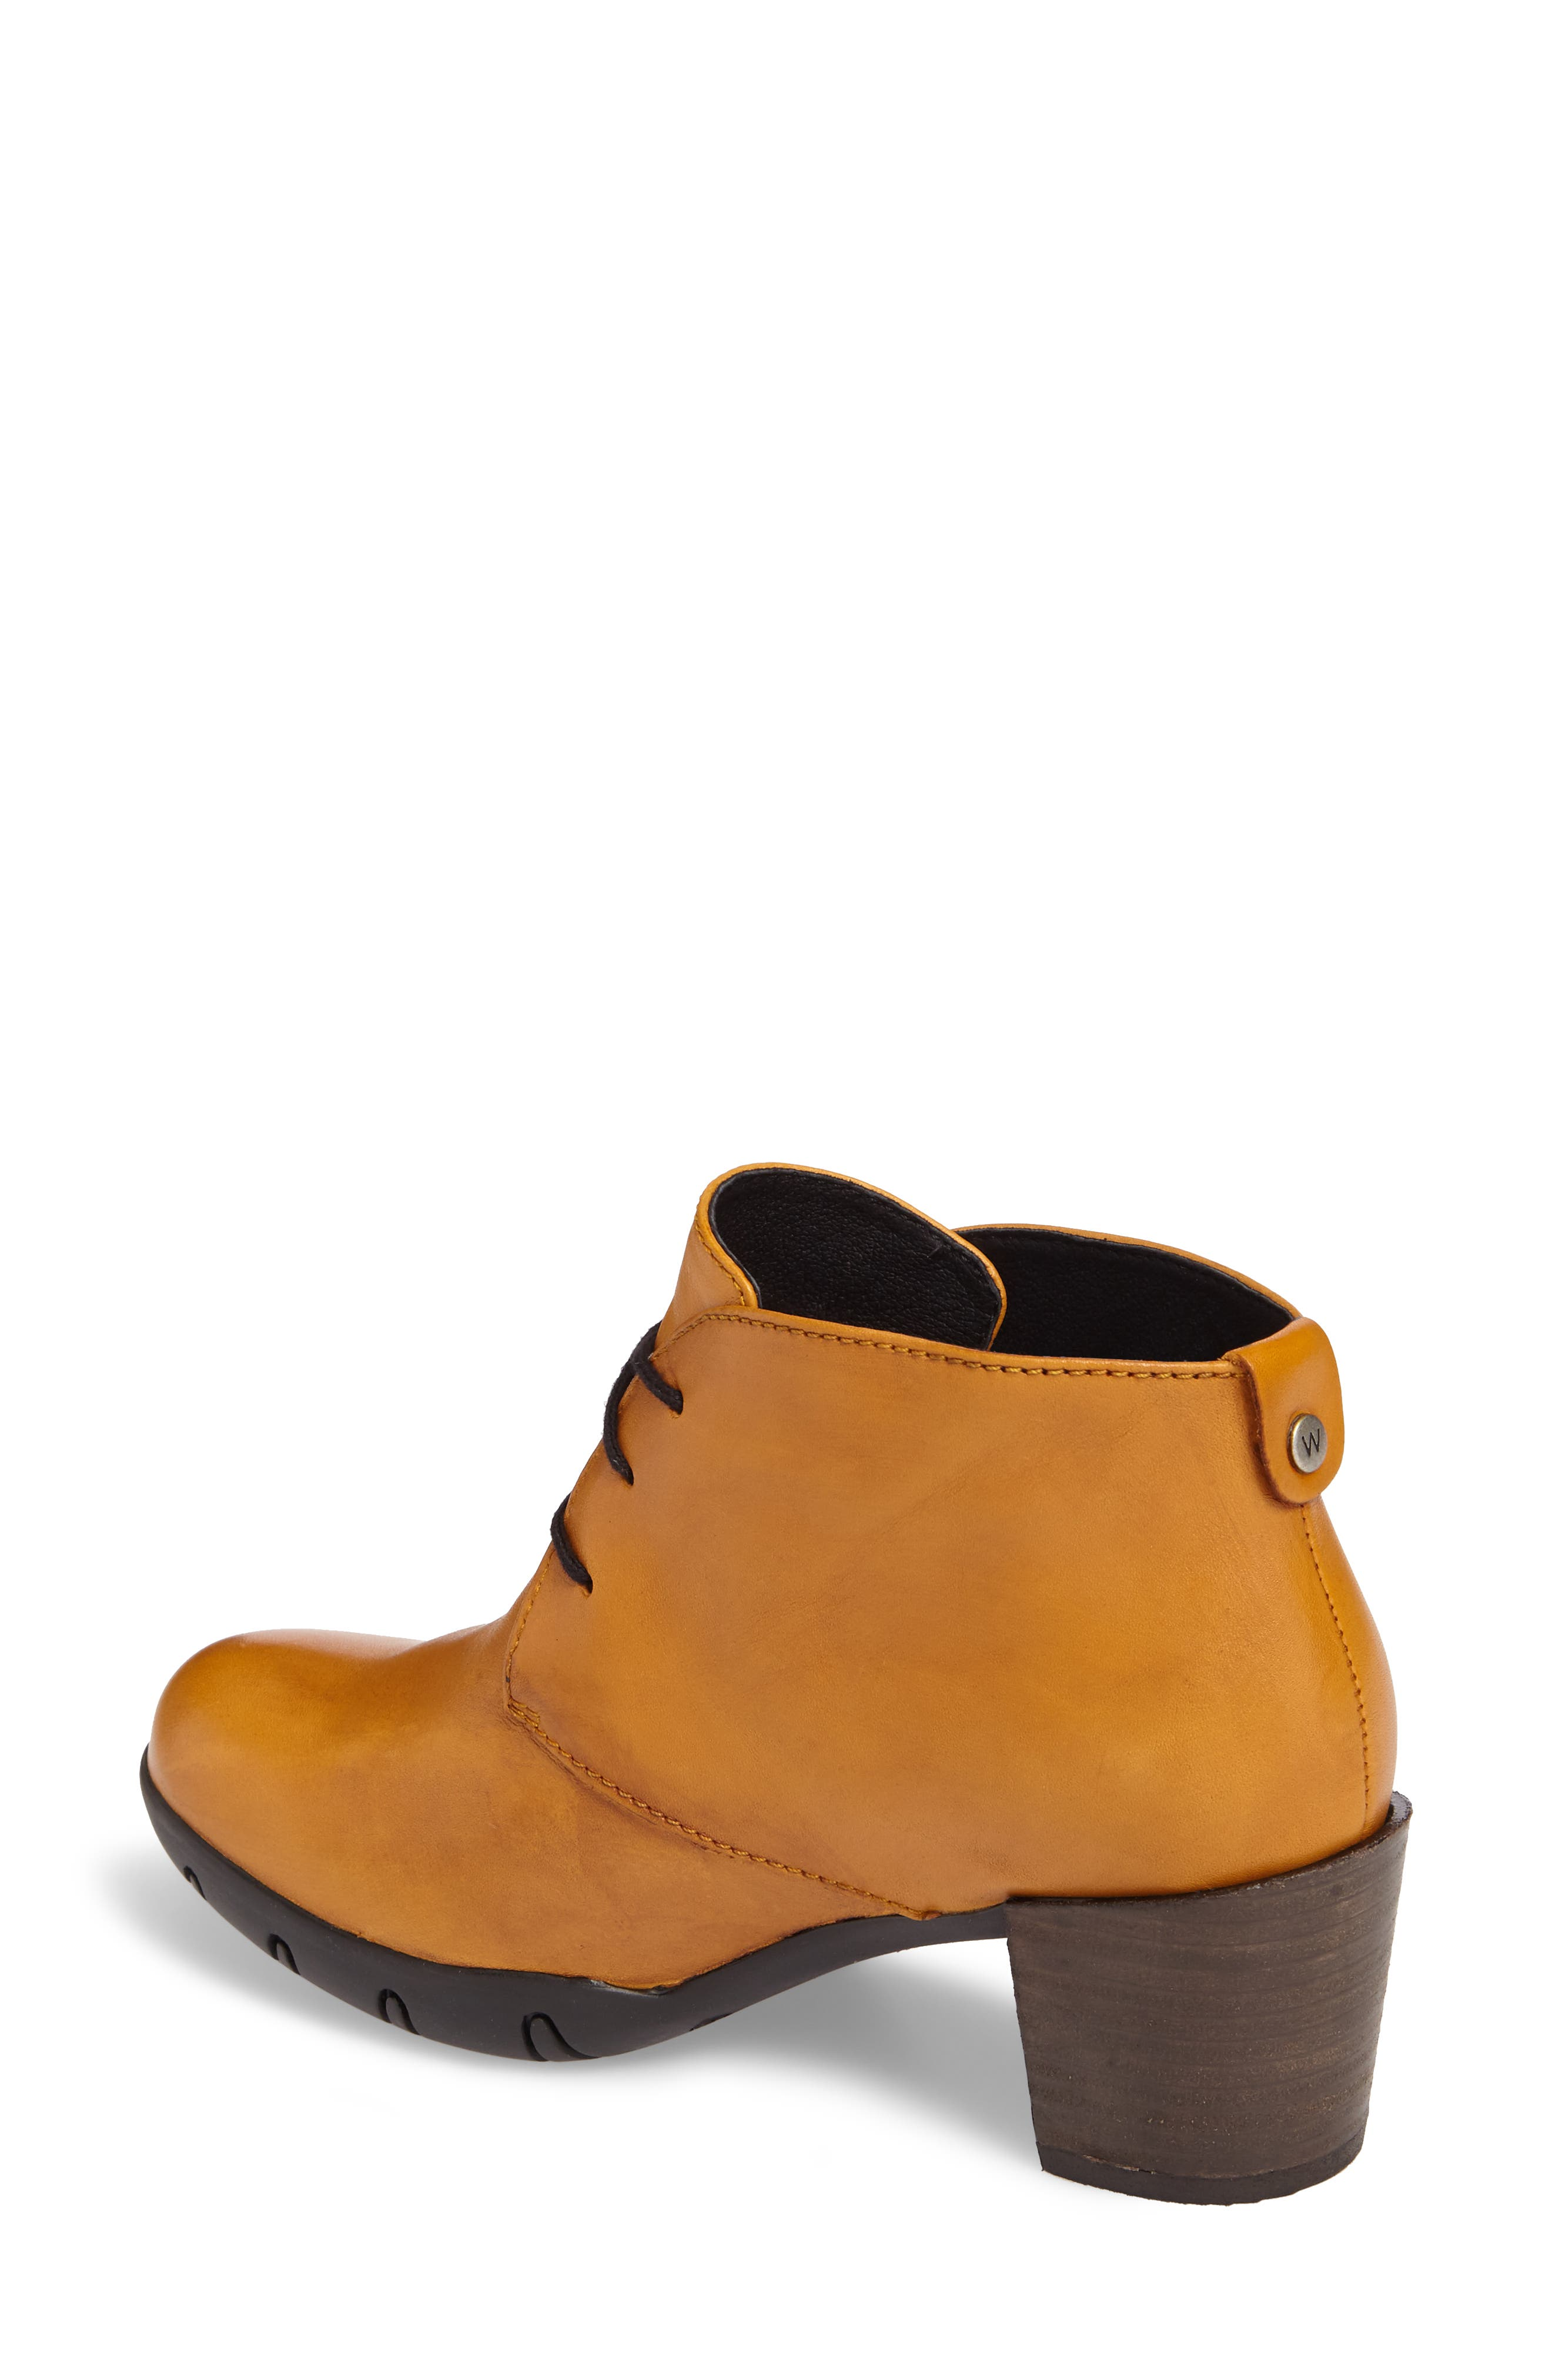 Bighorn Bootie,                             Alternate thumbnail 2, color,                             Curry Leather